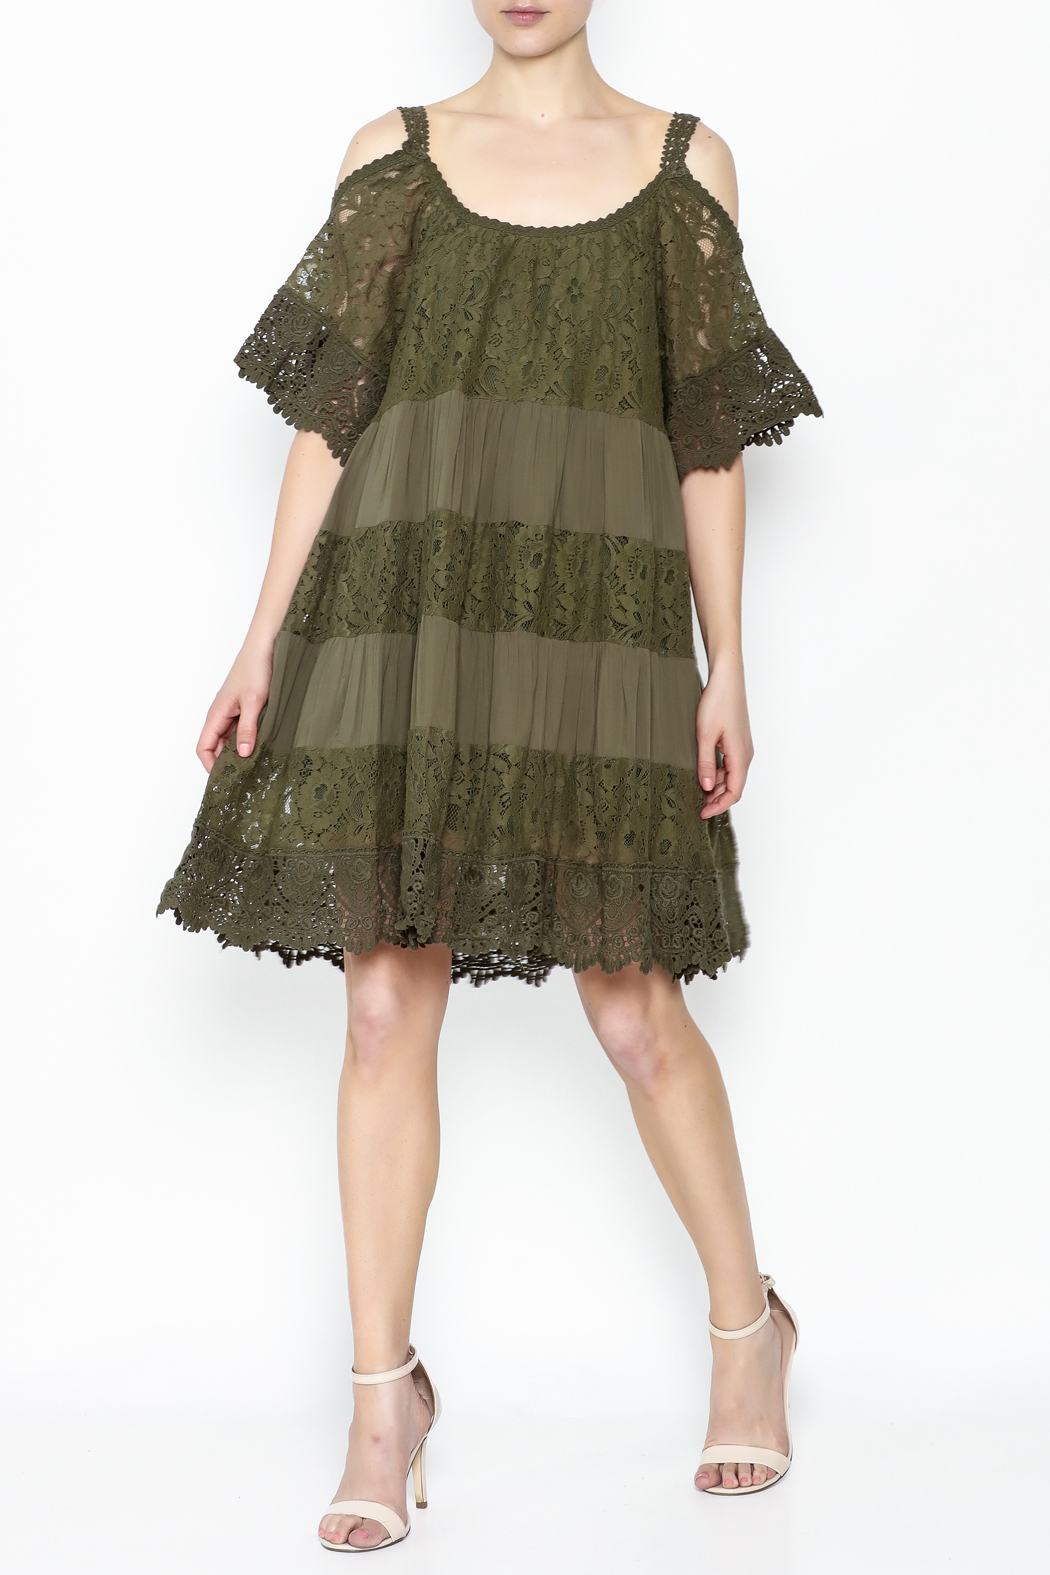 Muche et Muchette Lace Dress Army Green - Main Image